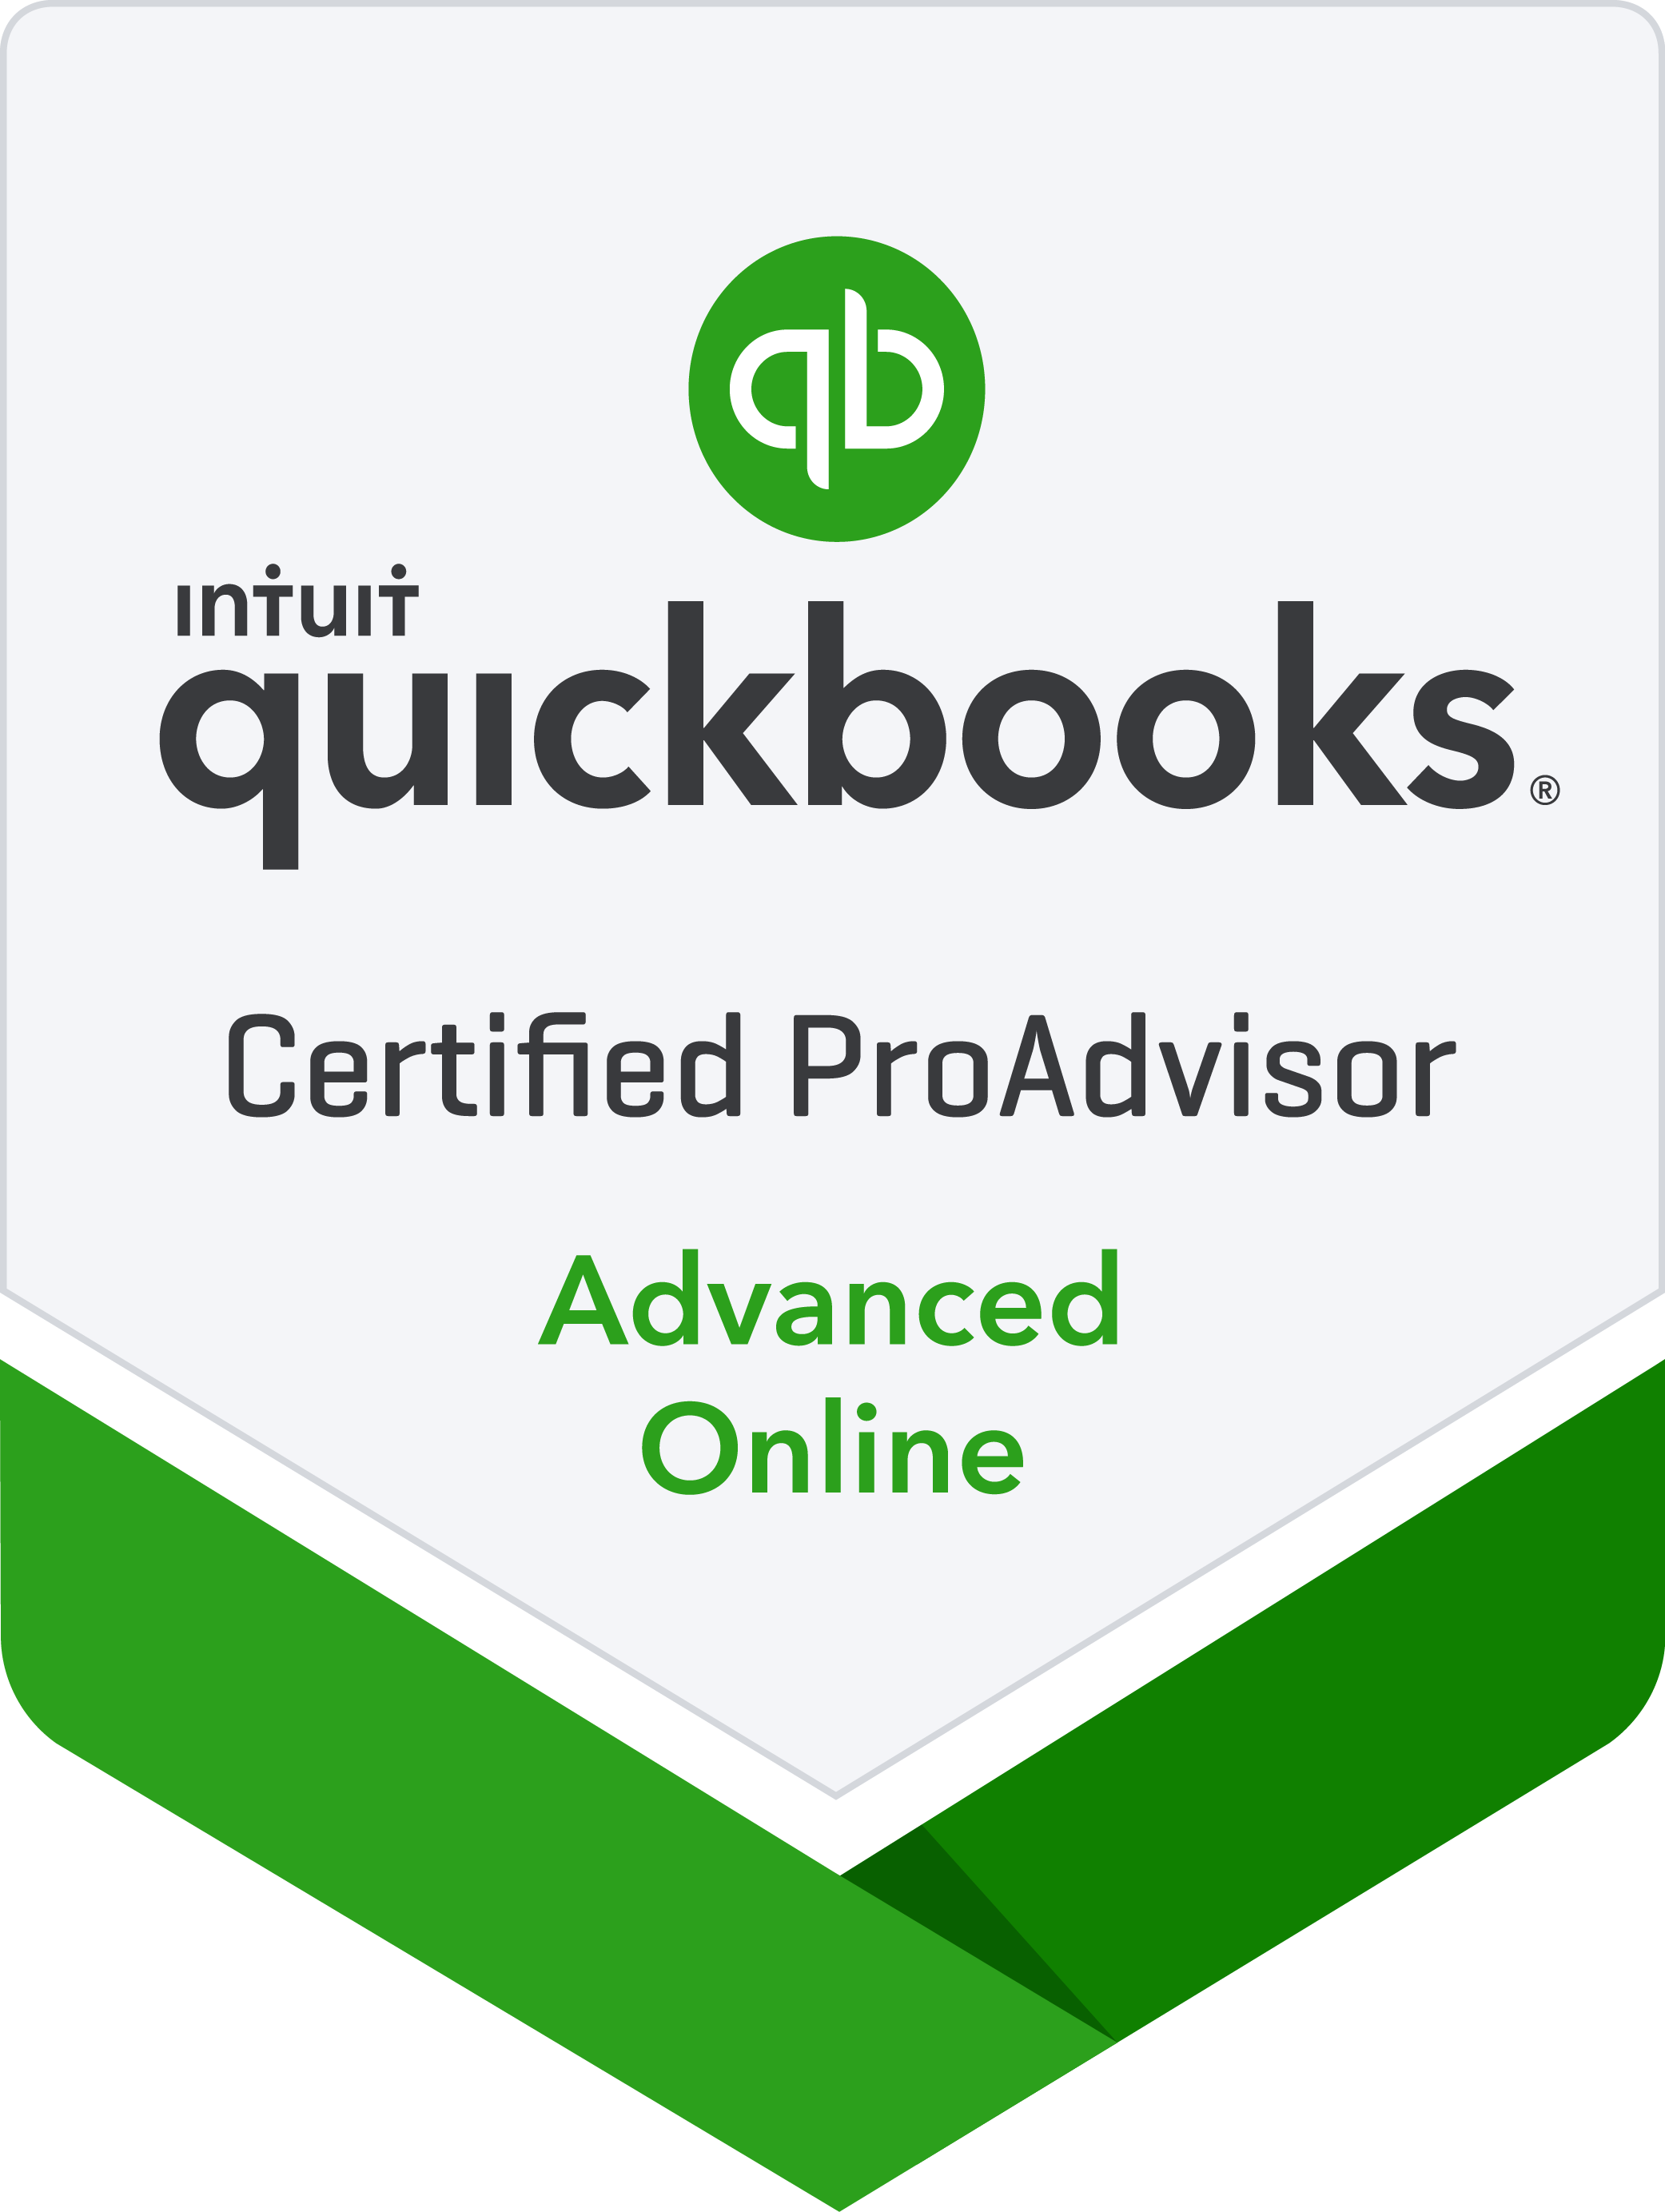 QuickBooks Advanced Online Certified ProAdvisor badge